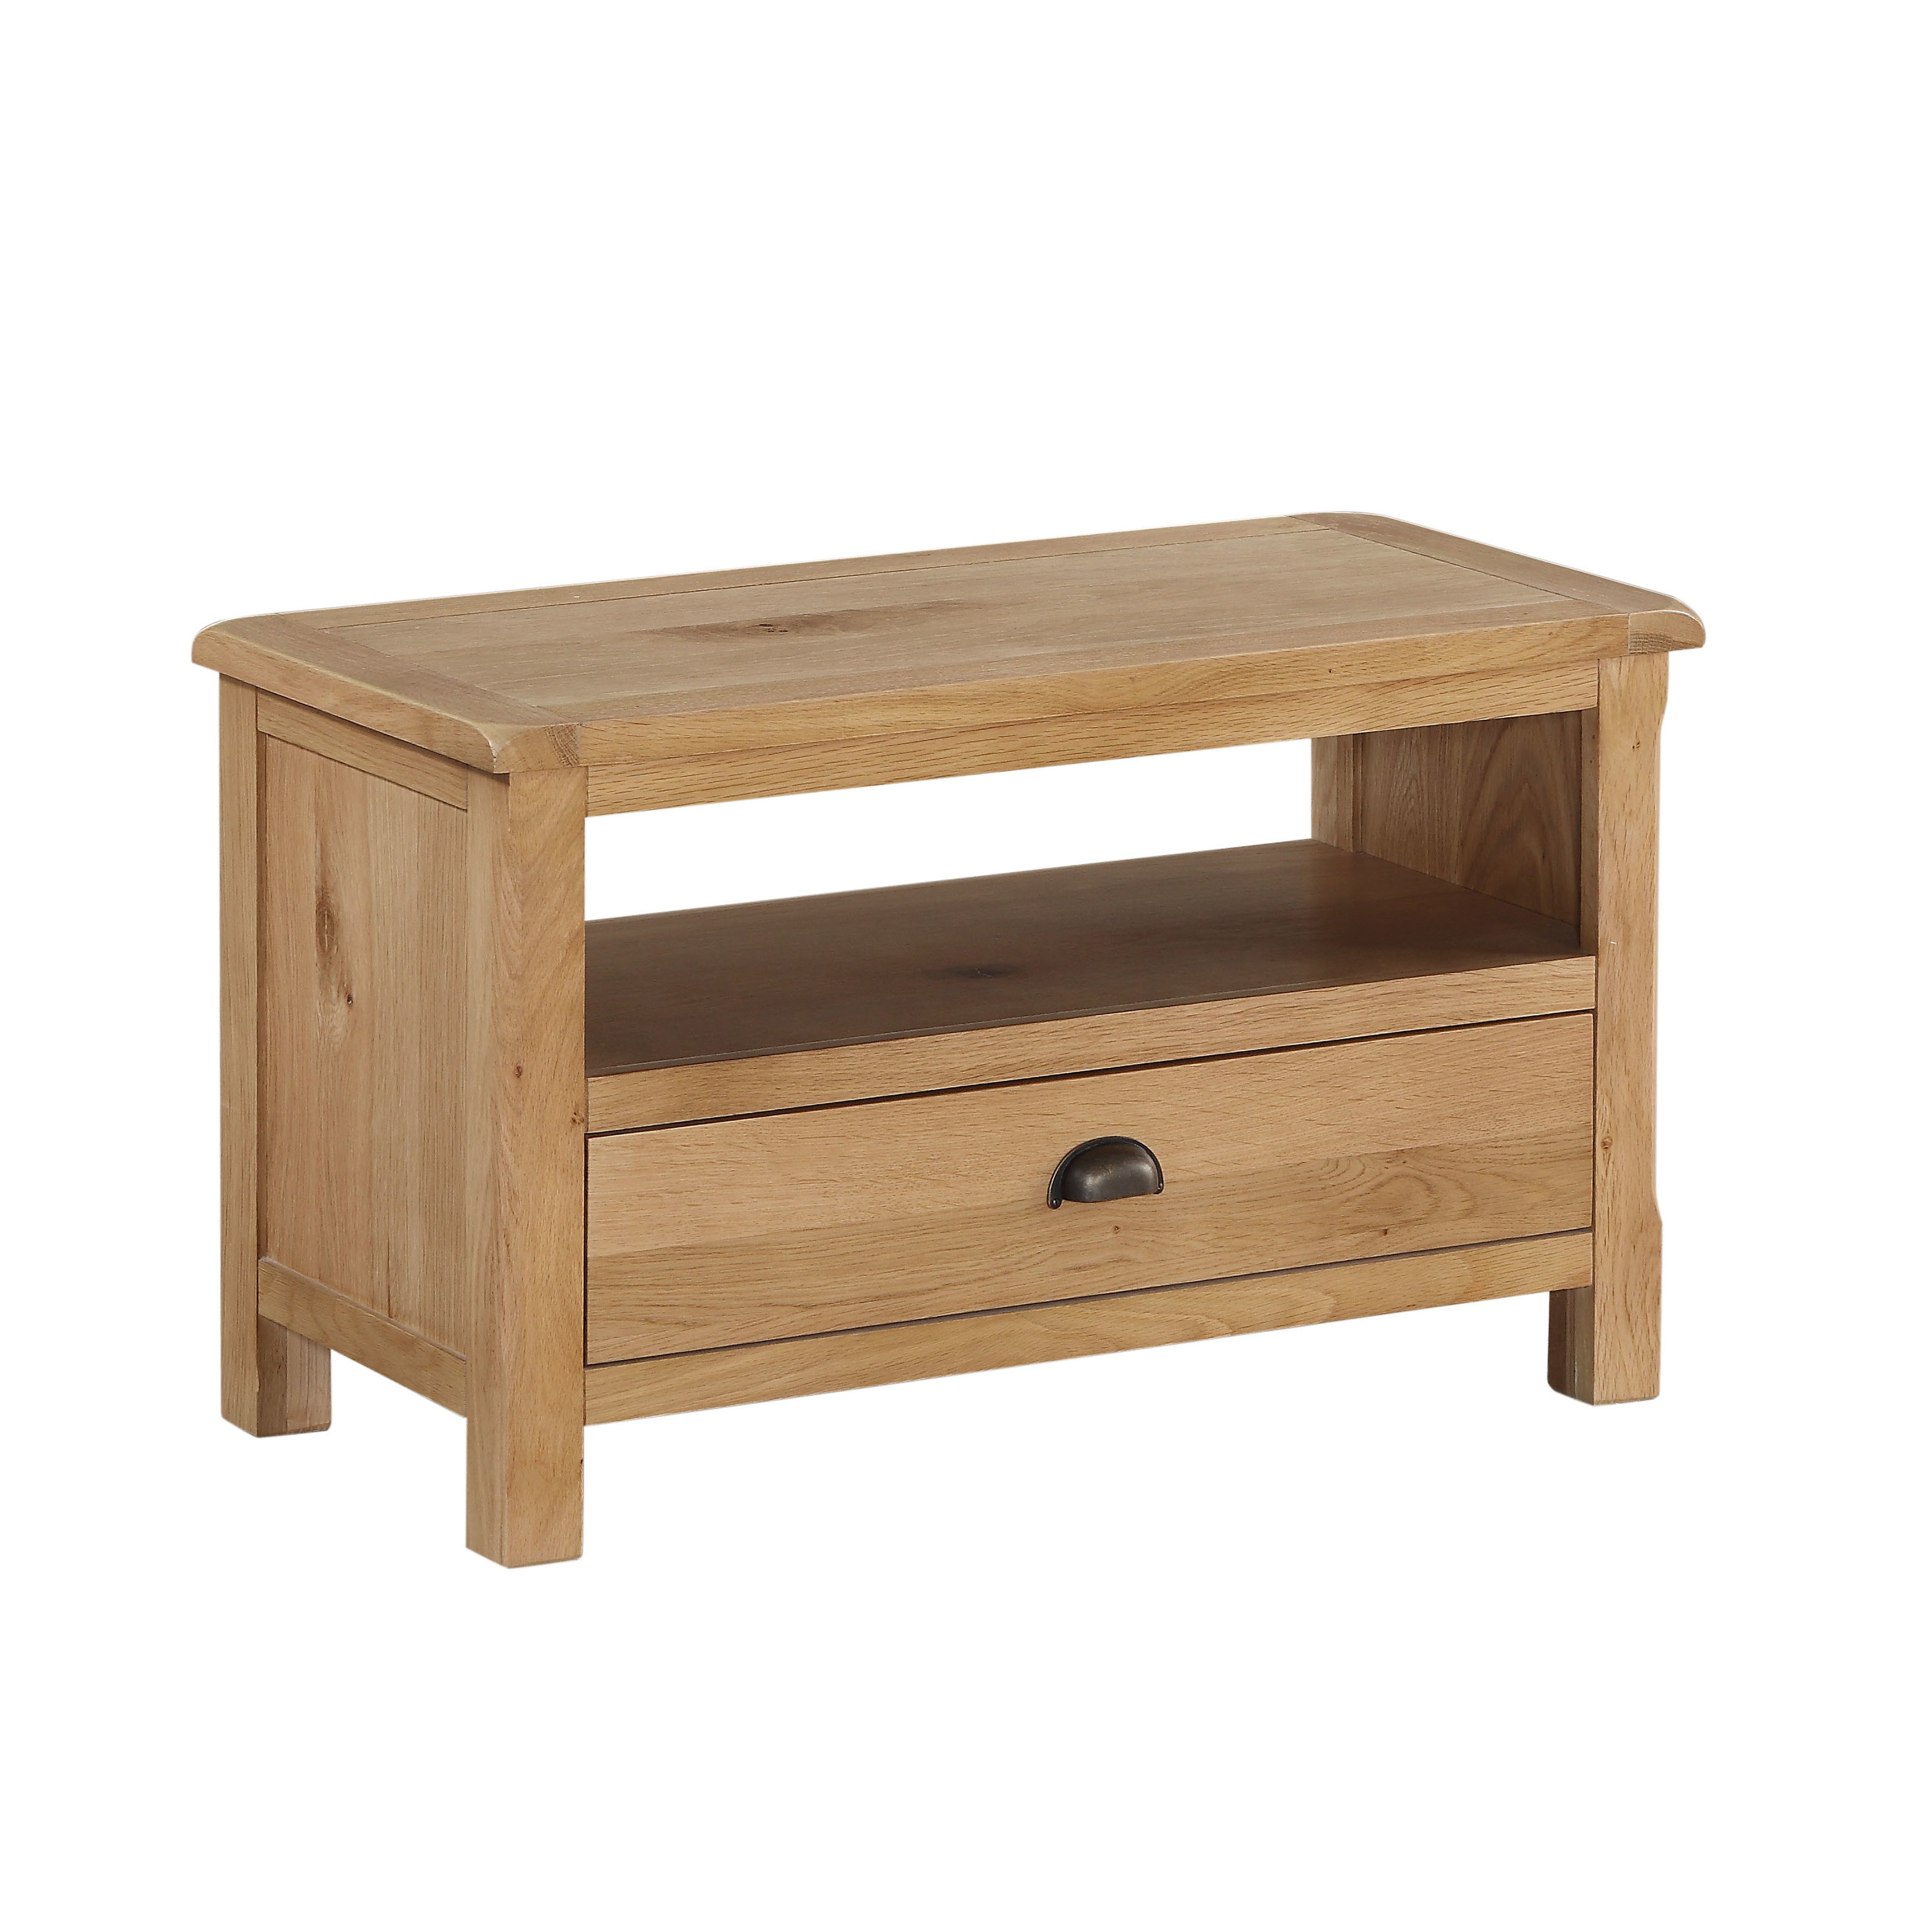 Dark Oak Tv Stand | Wayfair.co.uk Intended For Valencia 60 Inch Tv Stands (Gallery 15 of 20)